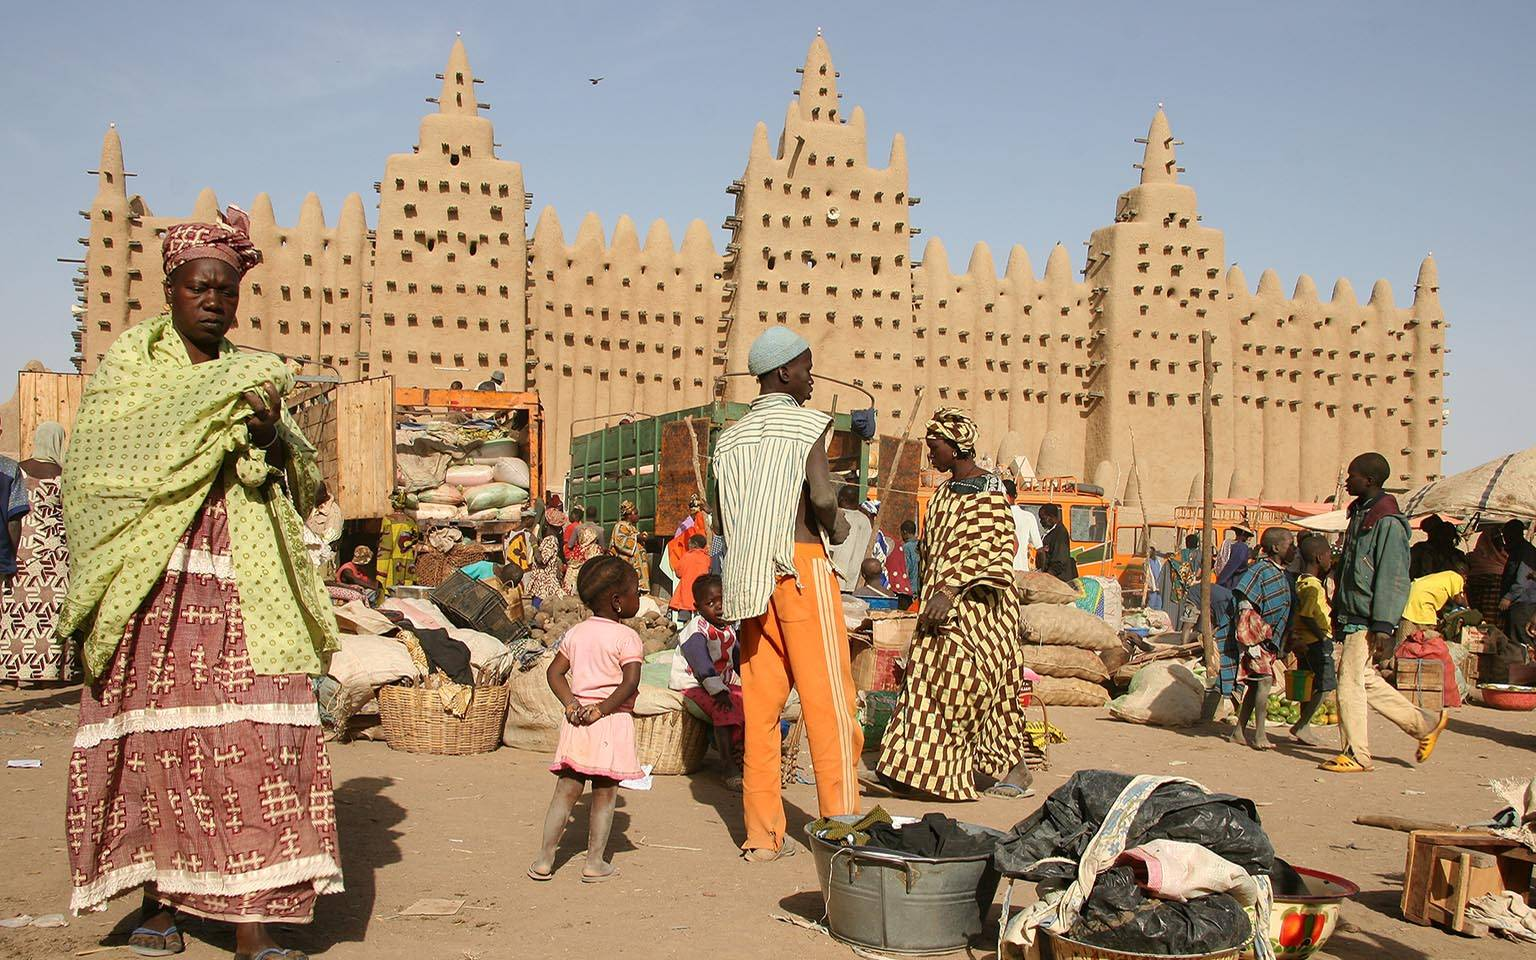 Mosque in Djenne with families in a market place in the foreground